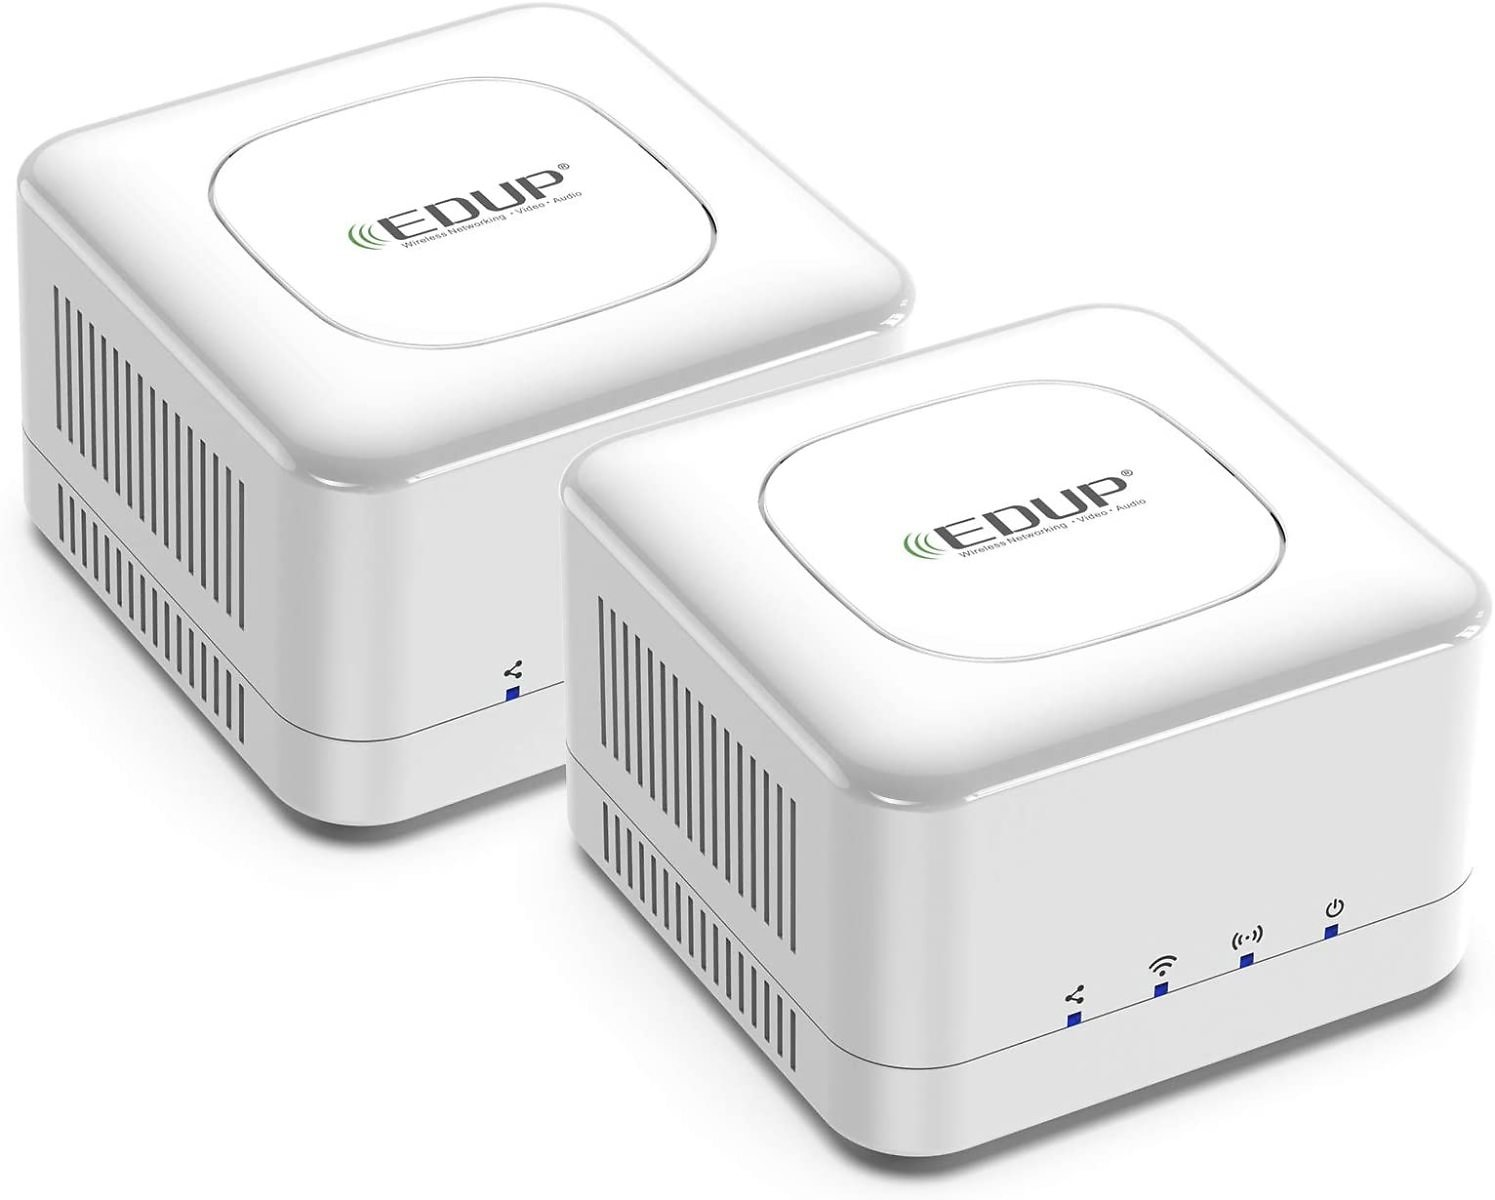 EDUP Whole Home Office Mesh WiFi System Dual Band AC1200M Wireless Mesh Router (Pack of 2)